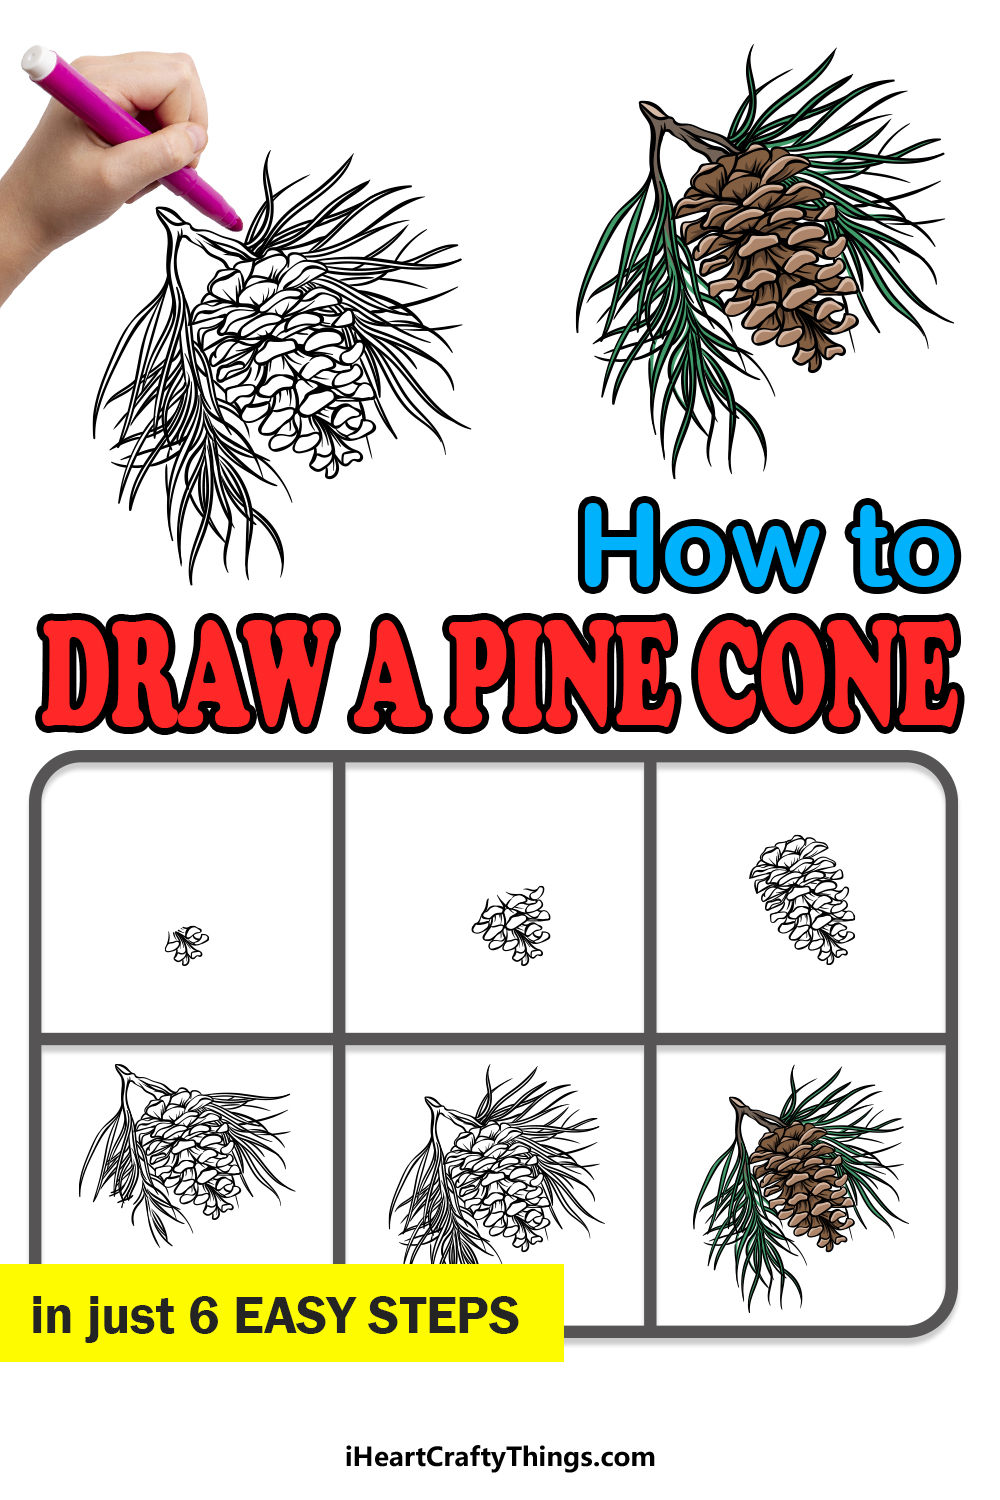 how to draw a pine cone in 6 easy steps